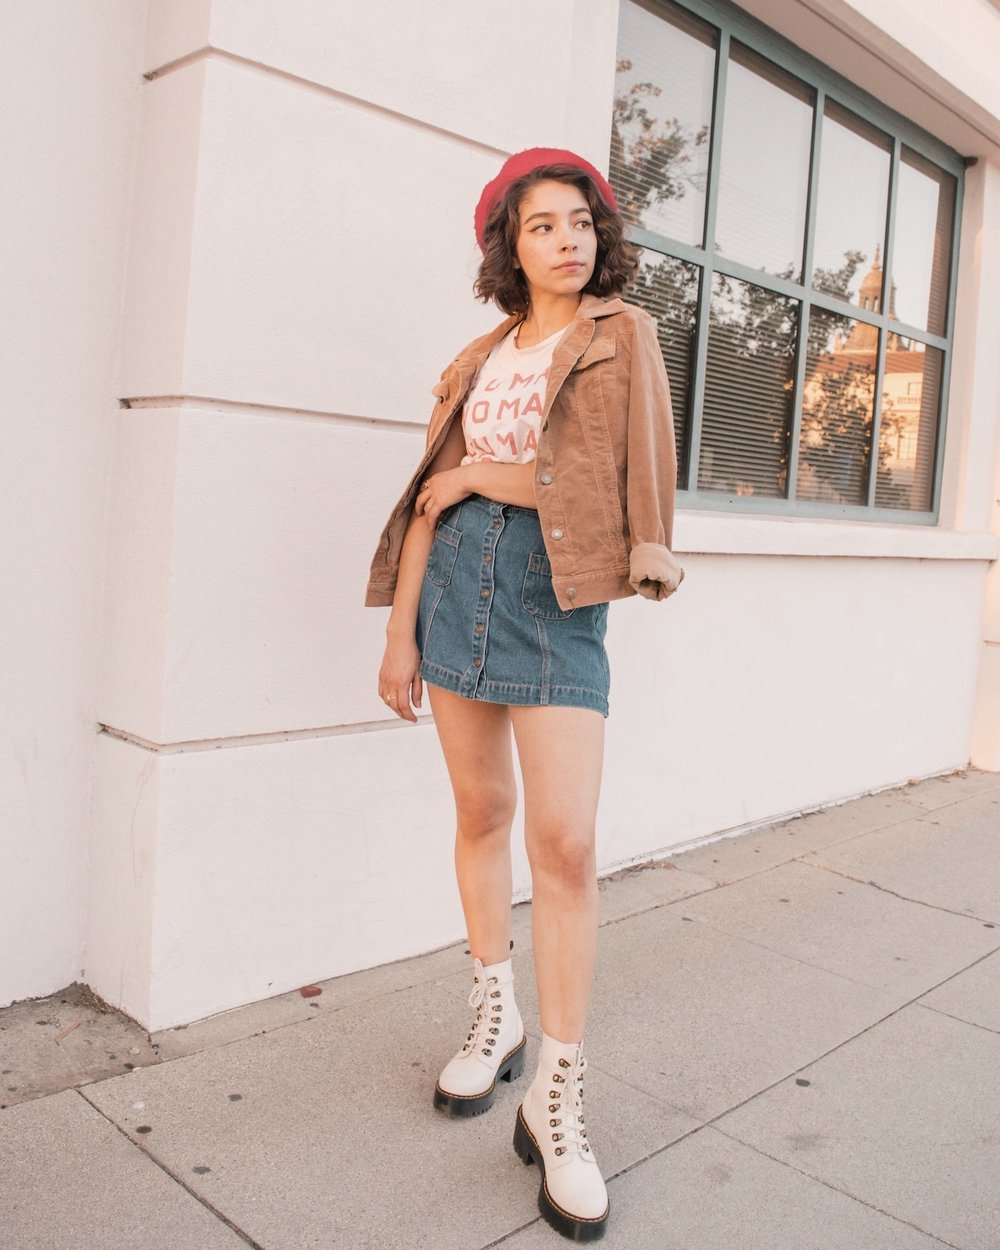 Denim and corduroy outfit with Everlane top // A Week Of Self-Expressive Outfits With Aja Duran From Aja With Love on The Good Trade